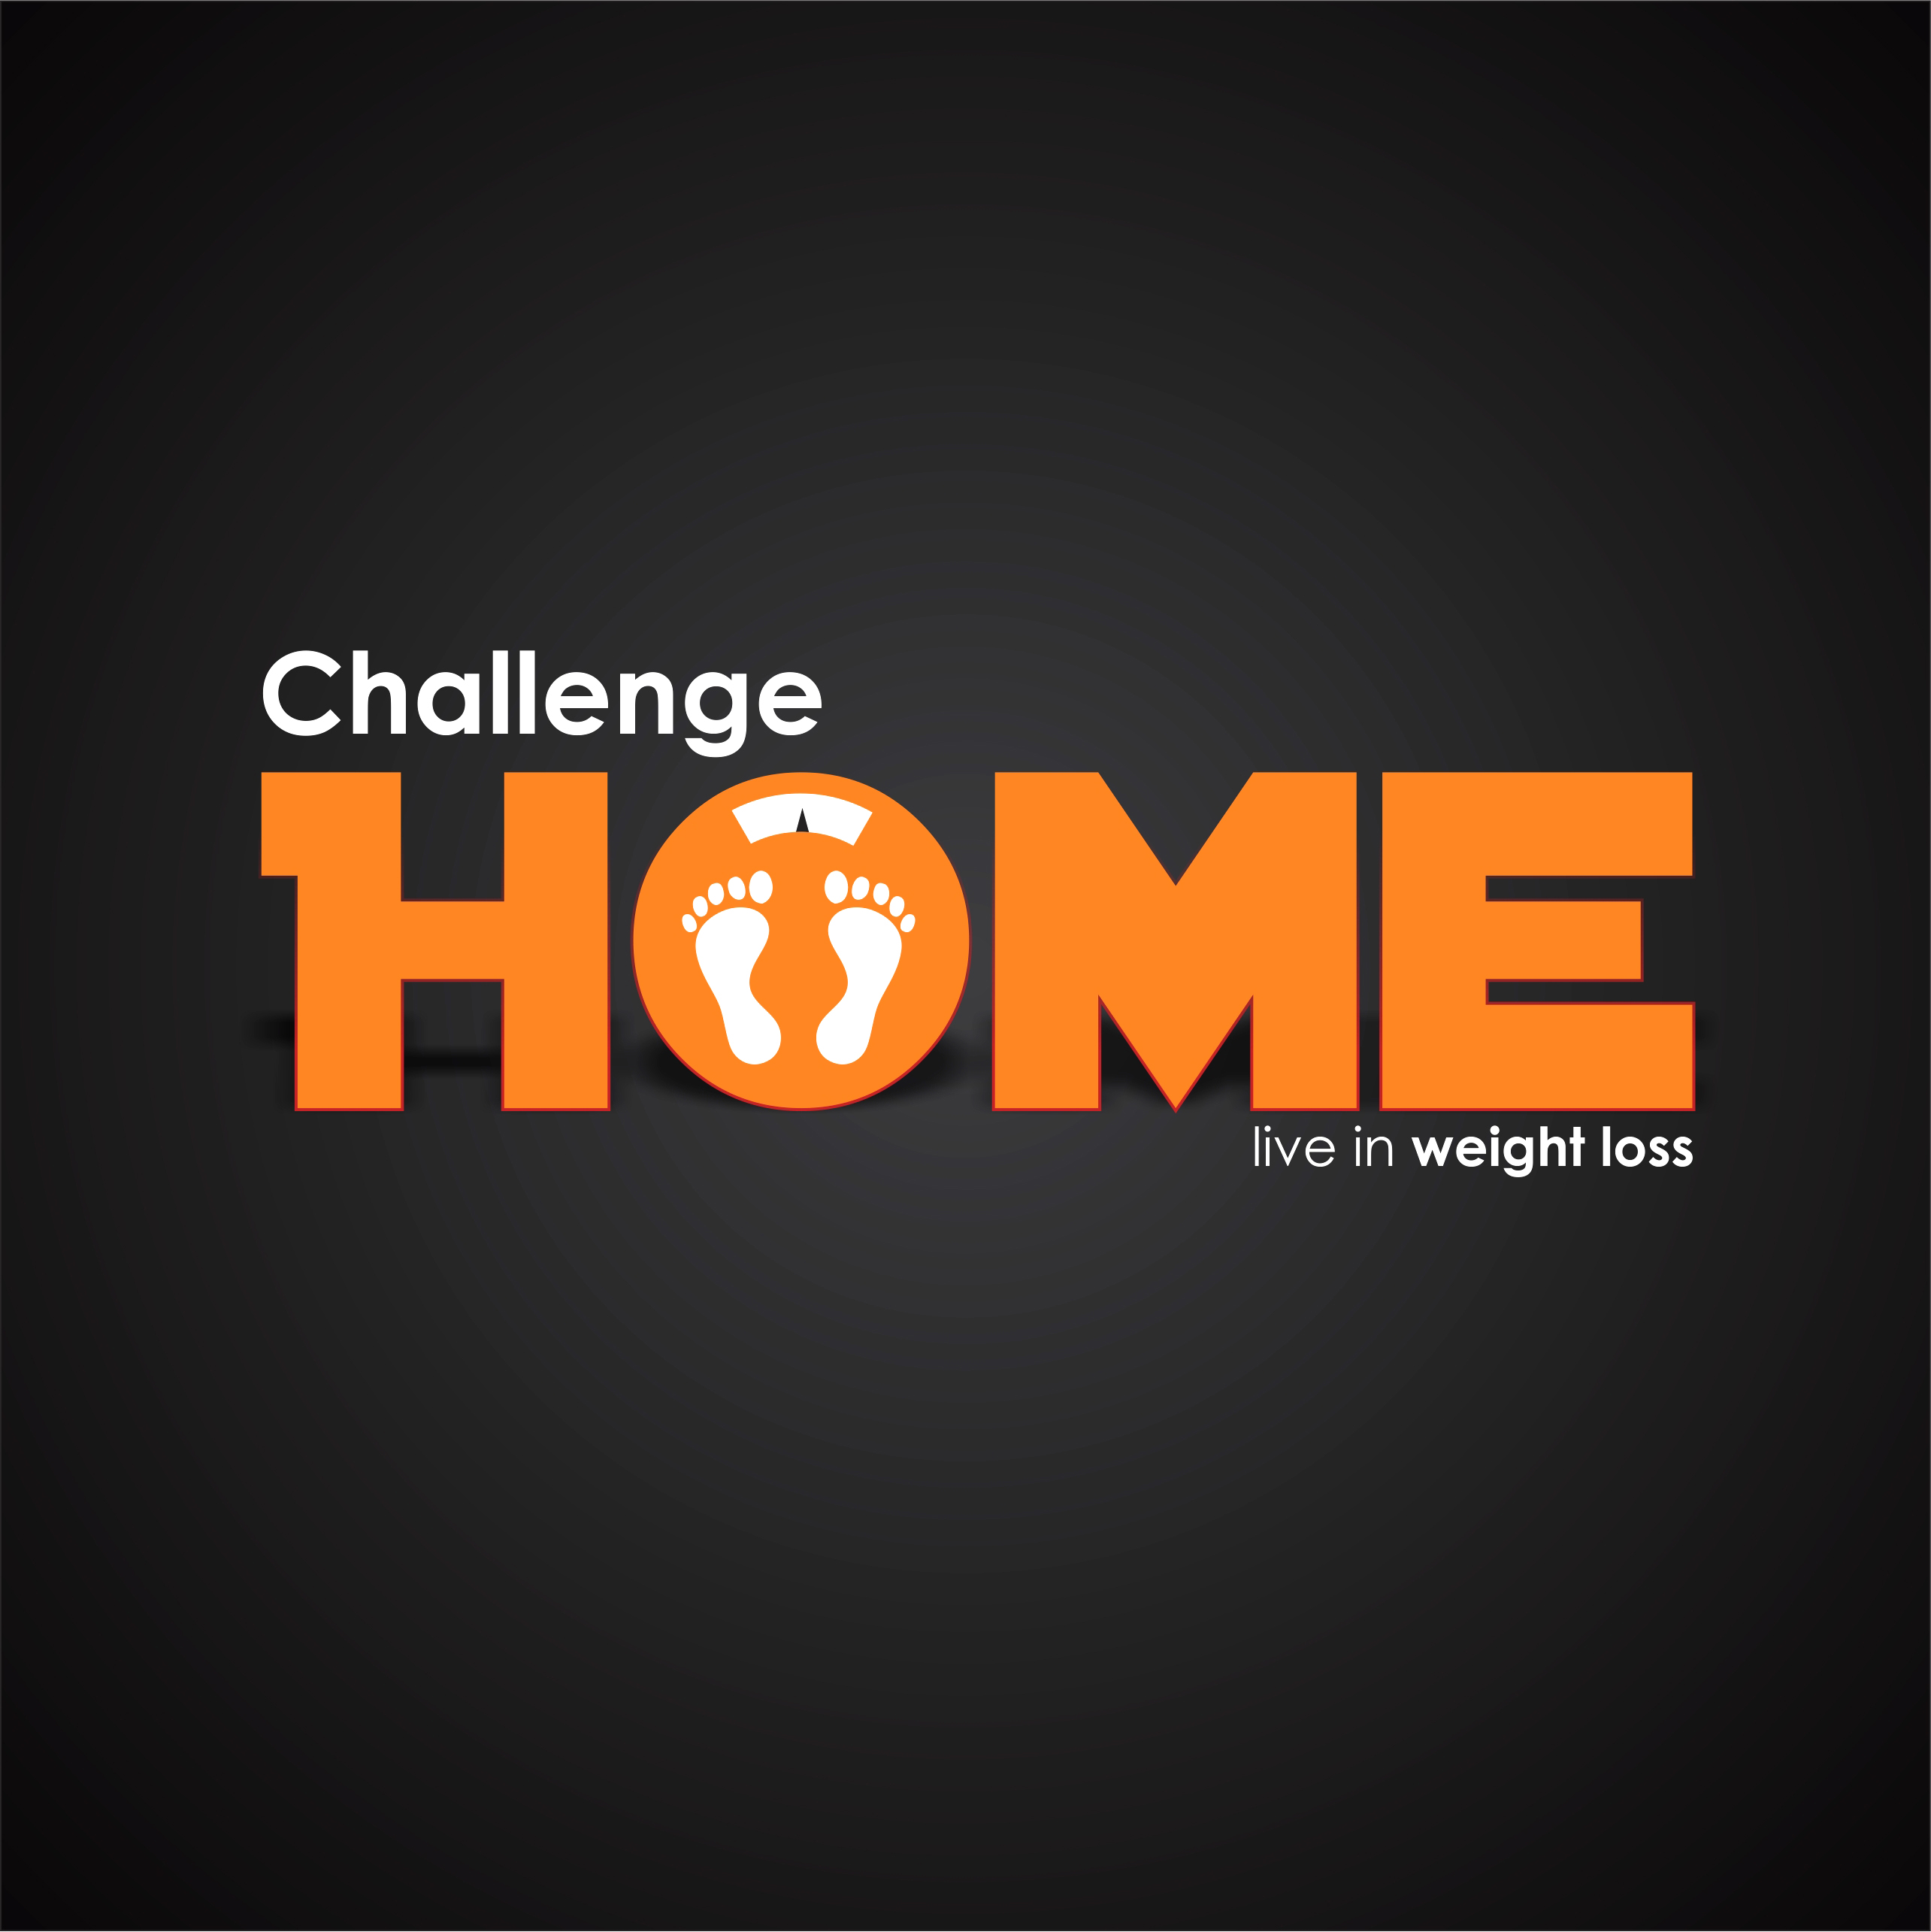 Logo Design by Sandeep Parab - Entry No. 114 in the Logo Design Contest Unique Logo Design Wanted for Challenge Home.